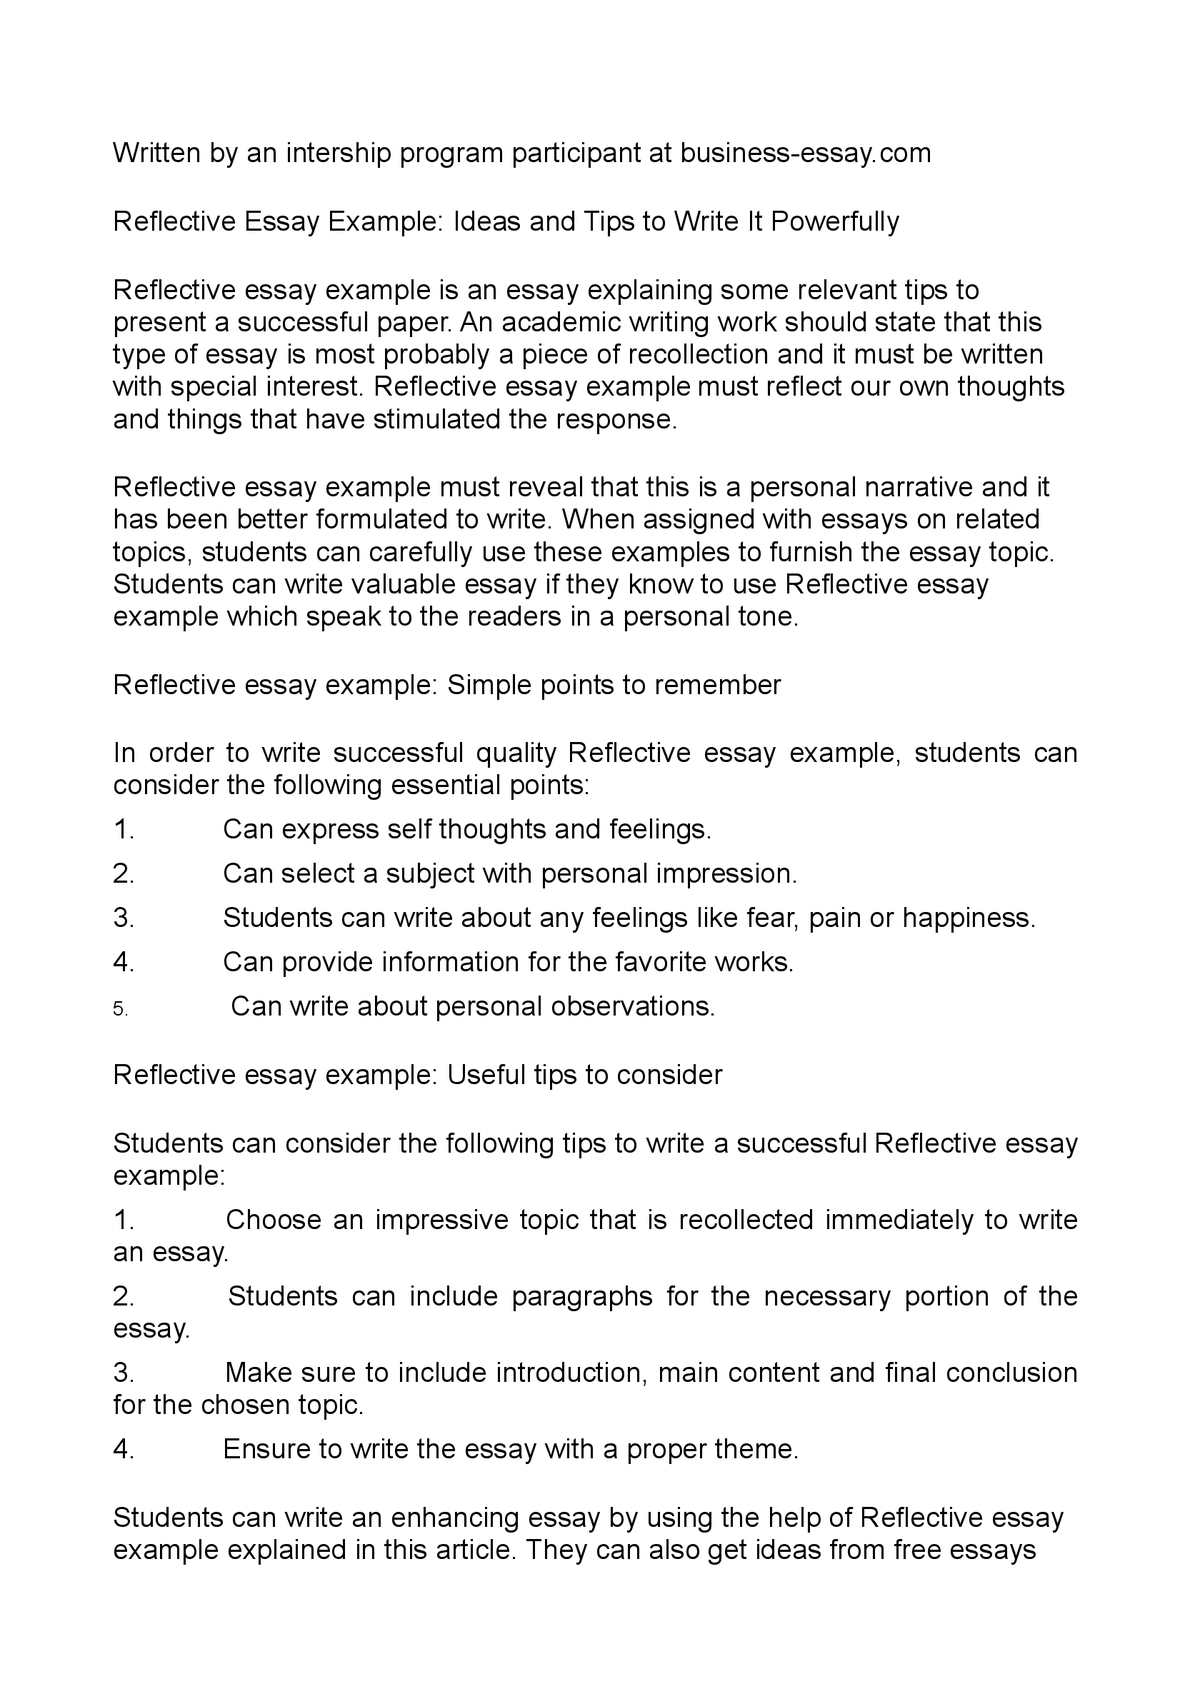 Calamo  Reflective Essay Example Ideas And Tips To  International Business Essays Management Essay Writing Calamo  Reflective Essay Example Ideas And Tips To  Essay In English Language also Essay On The Yellow Wallpaper